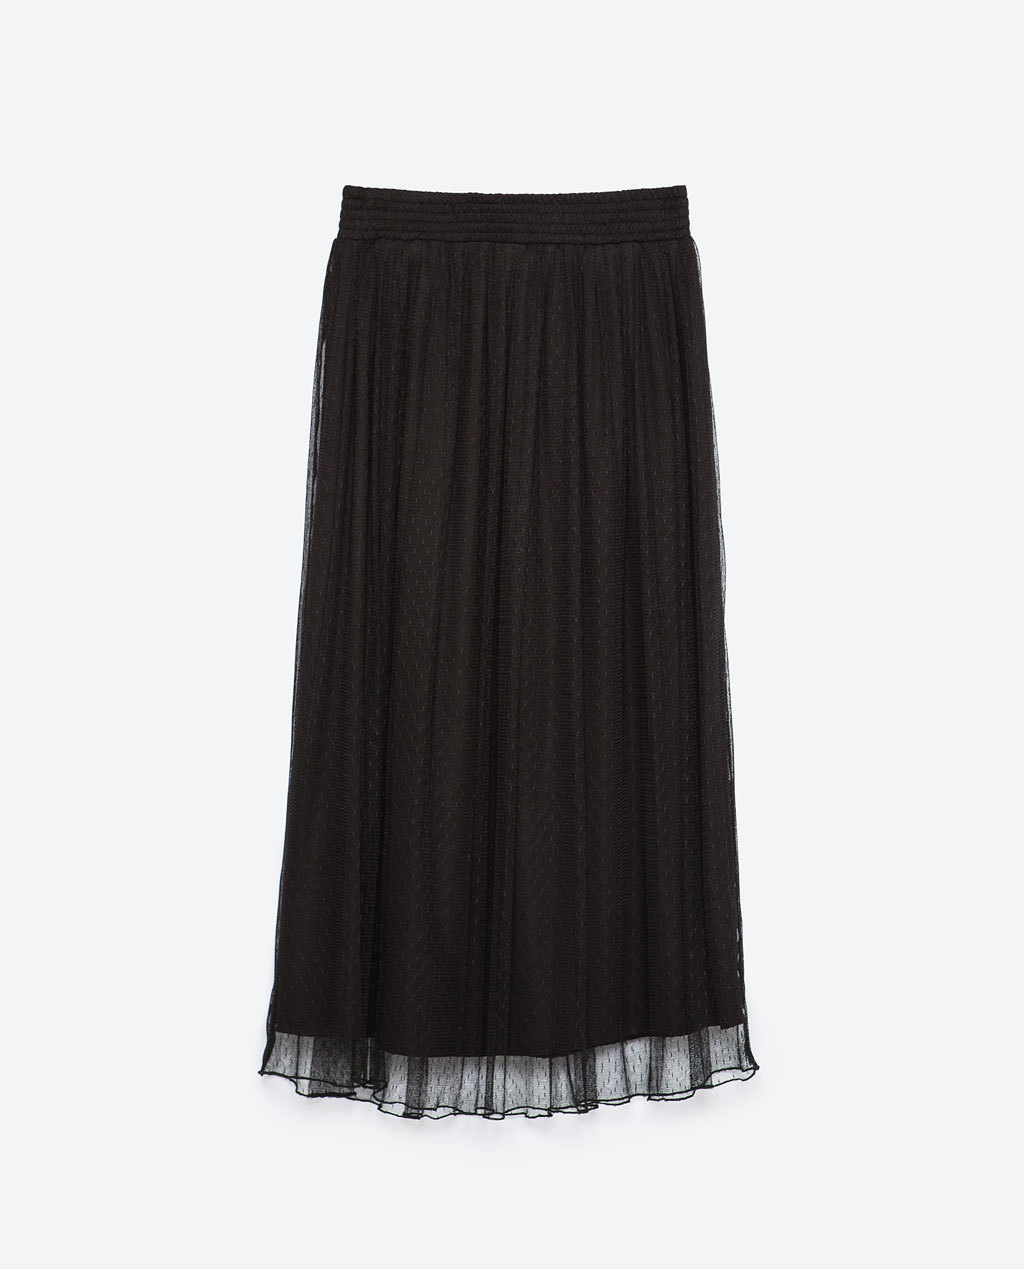 Sheer Midi Skirt - length: calf length; pattern: plain; fit: loose/voluminous; waist: mid/regular rise; predominant colour: black; occasions: casual, creative work; style: a-line; fibres: polyester/polyamide - 100%; texture group: sheer fabrics/chiffon/organza etc.; pattern type: fabric; season: a/w 2015; wardrobe: basic